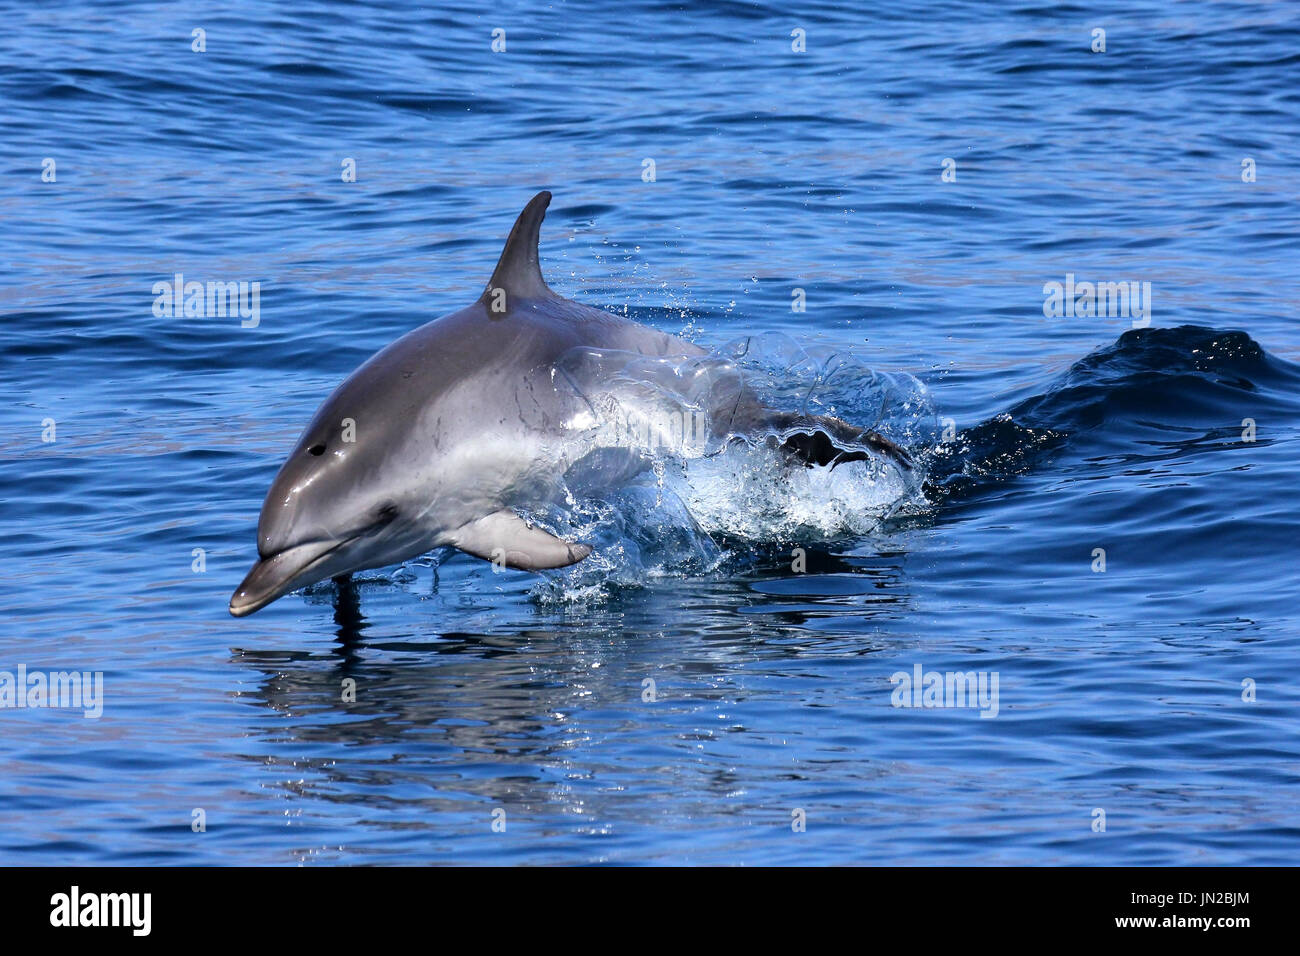 A juvenile Atlantic Spotted Dolphin (Stenella frontalis) jumping next to the boat - Stock Image